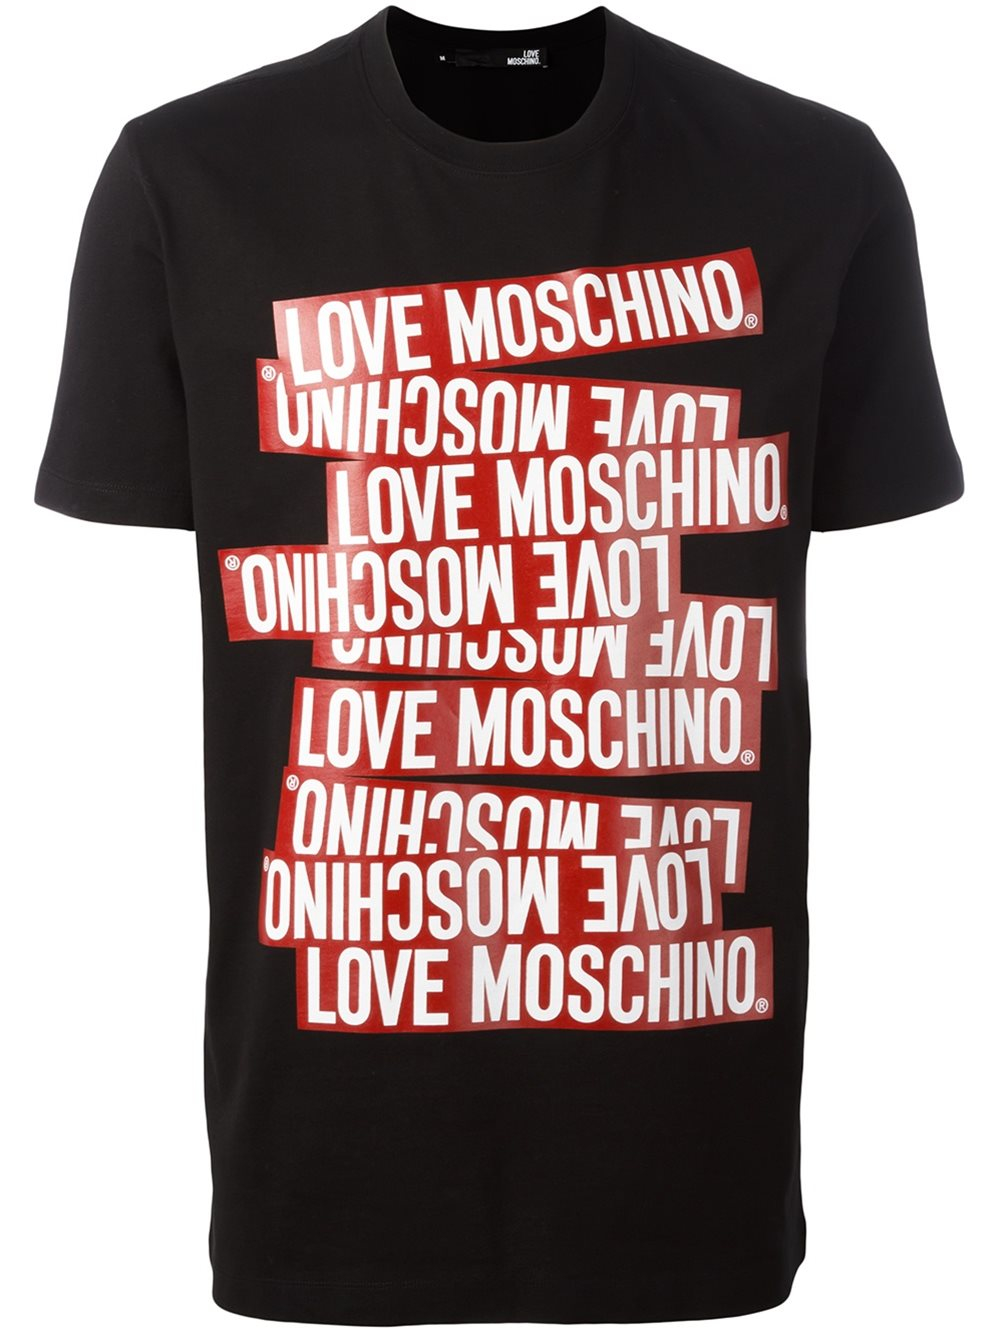 lyst love moschino logo print t shirt in black for men. Black Bedroom Furniture Sets. Home Design Ideas